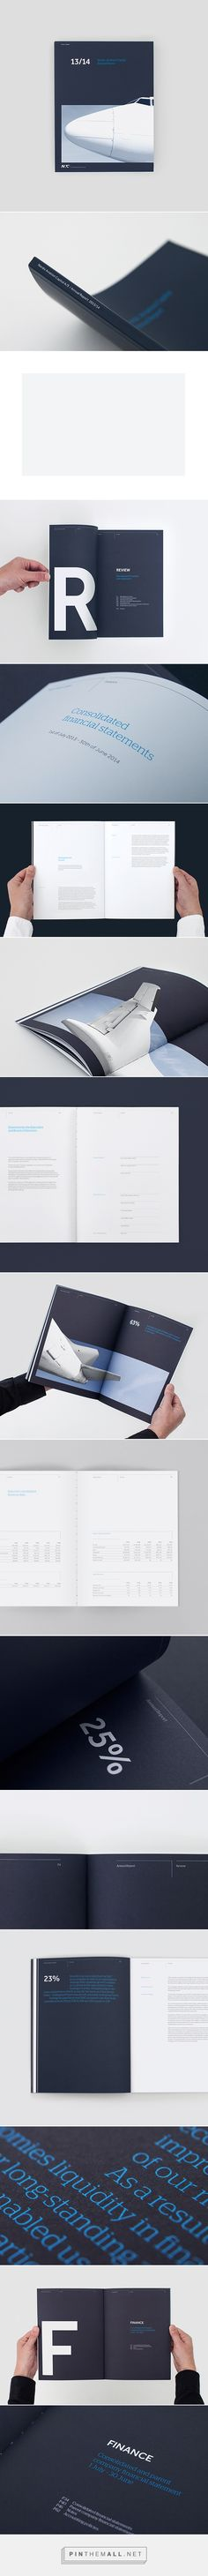 Design pornography clean and simple, pure beauty.  NAC - Annual Report on Behance